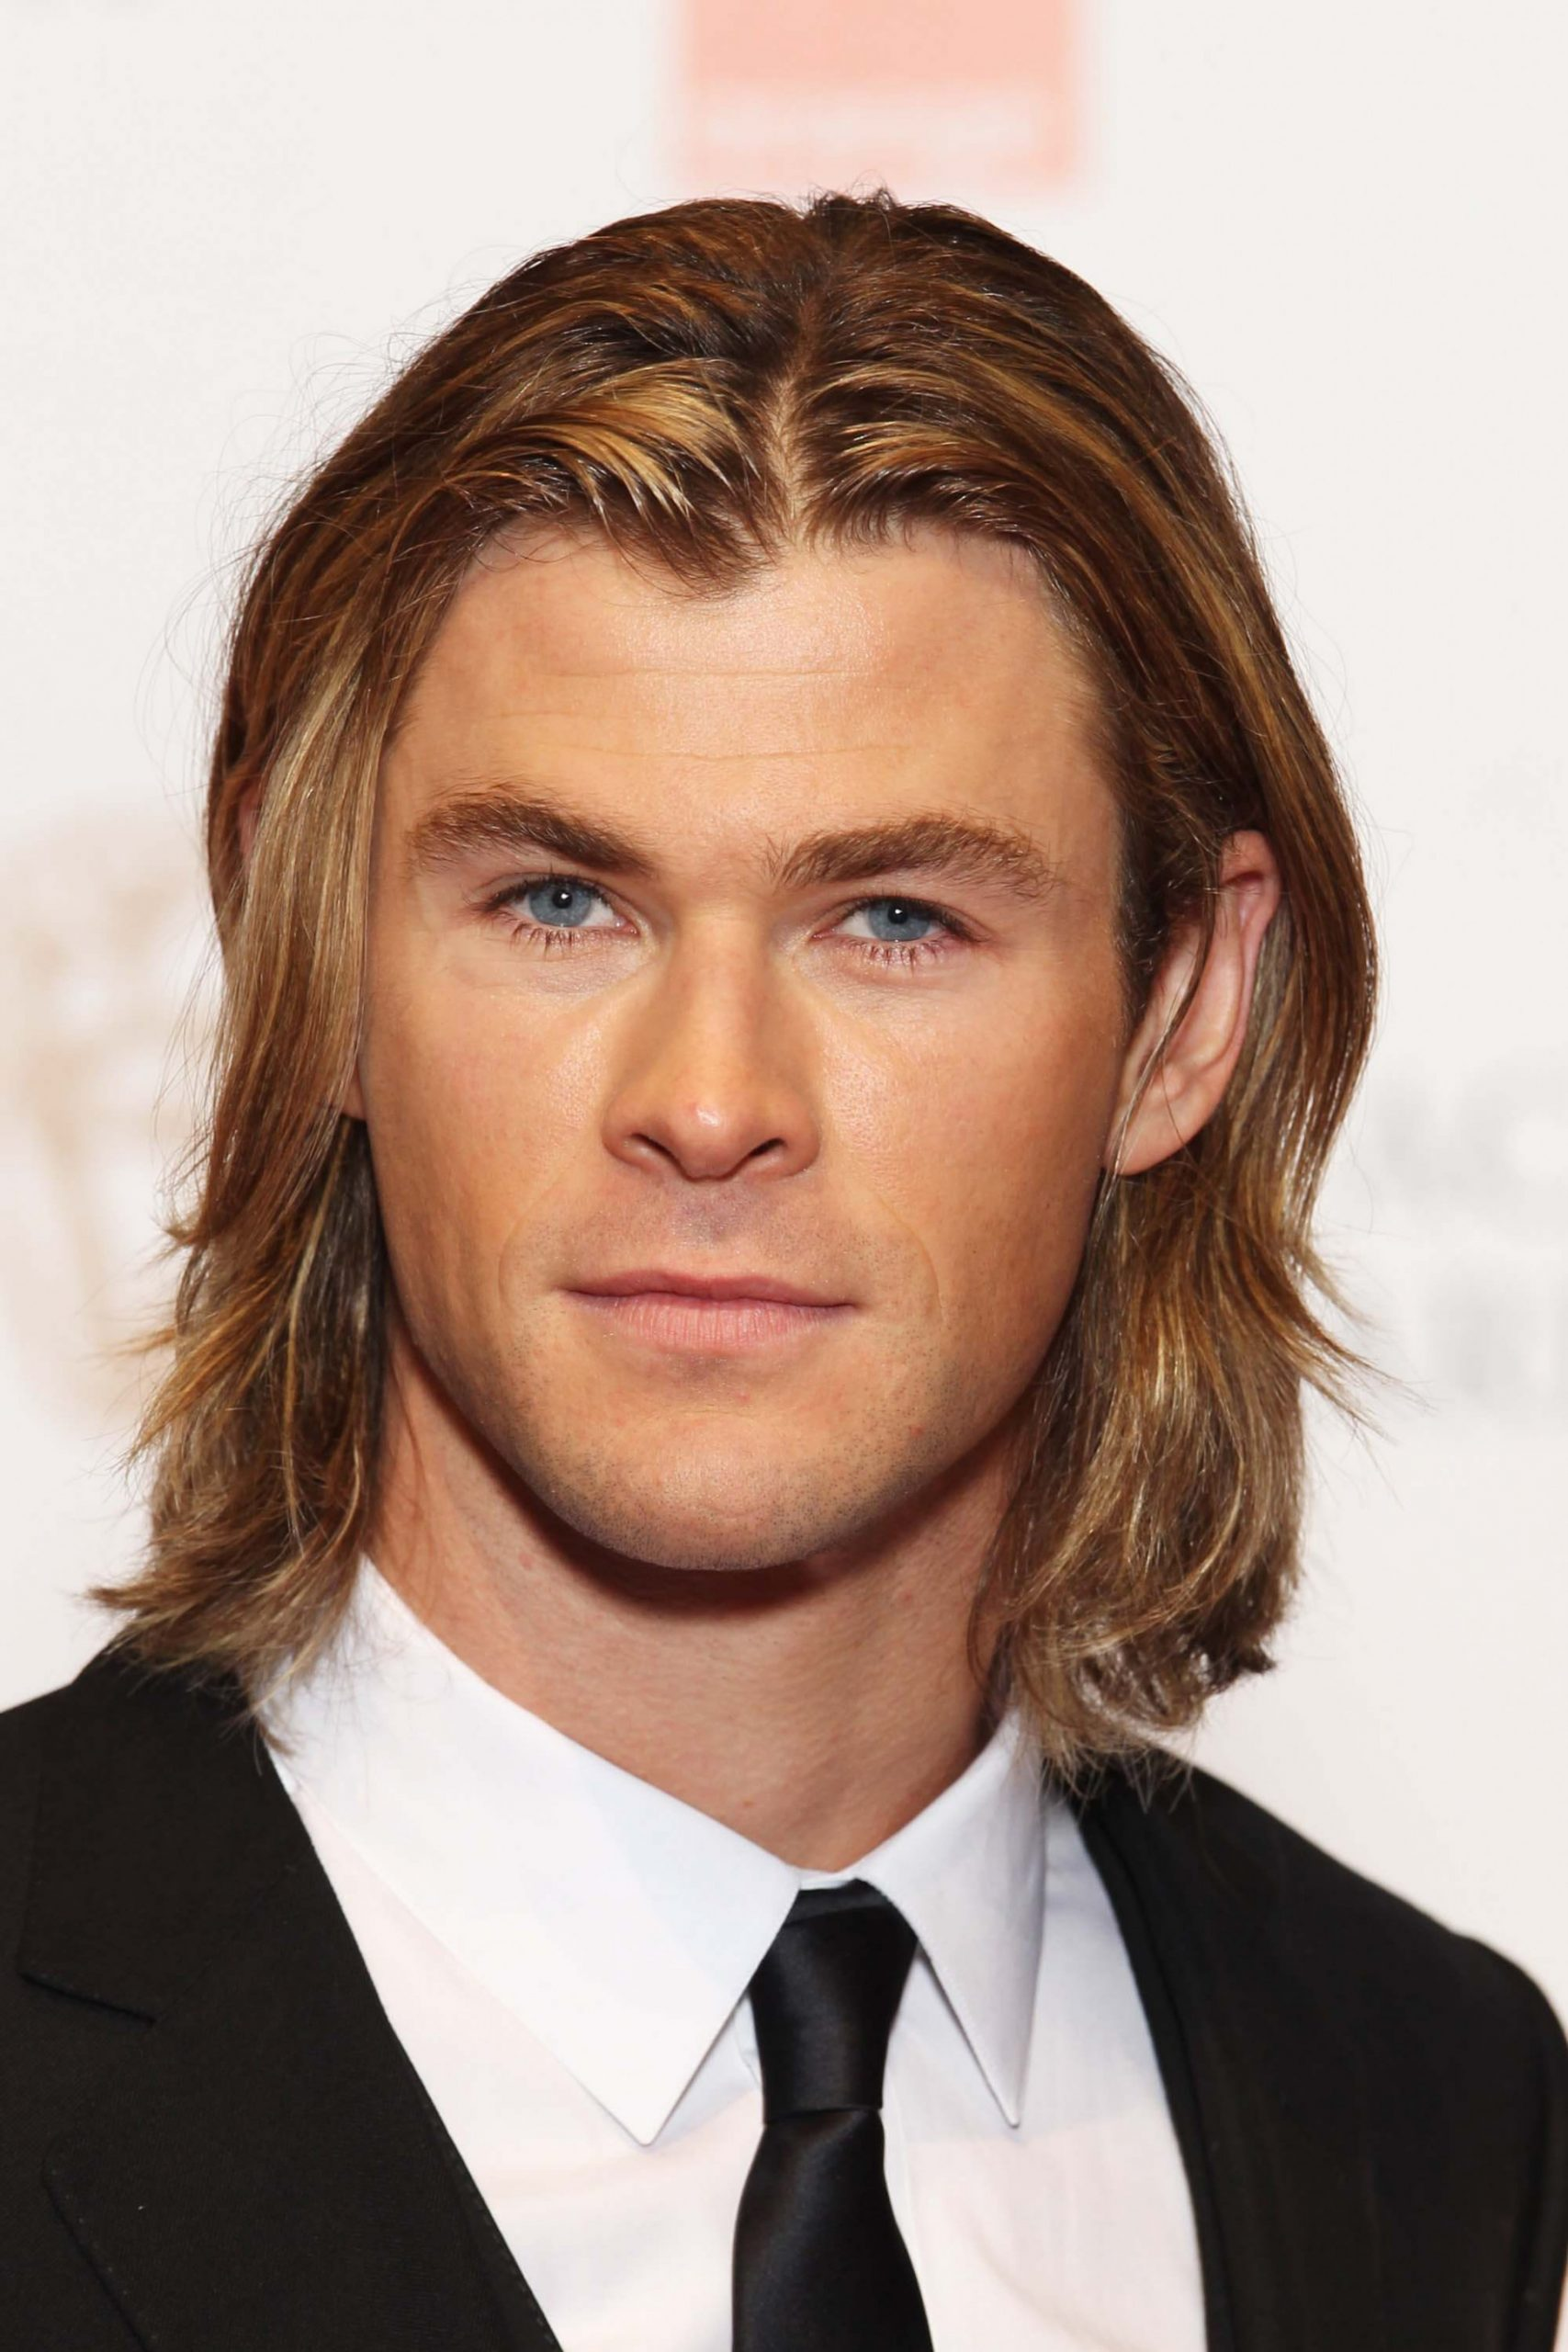 10 Men with Long Hair: All the Looks You Need to Know